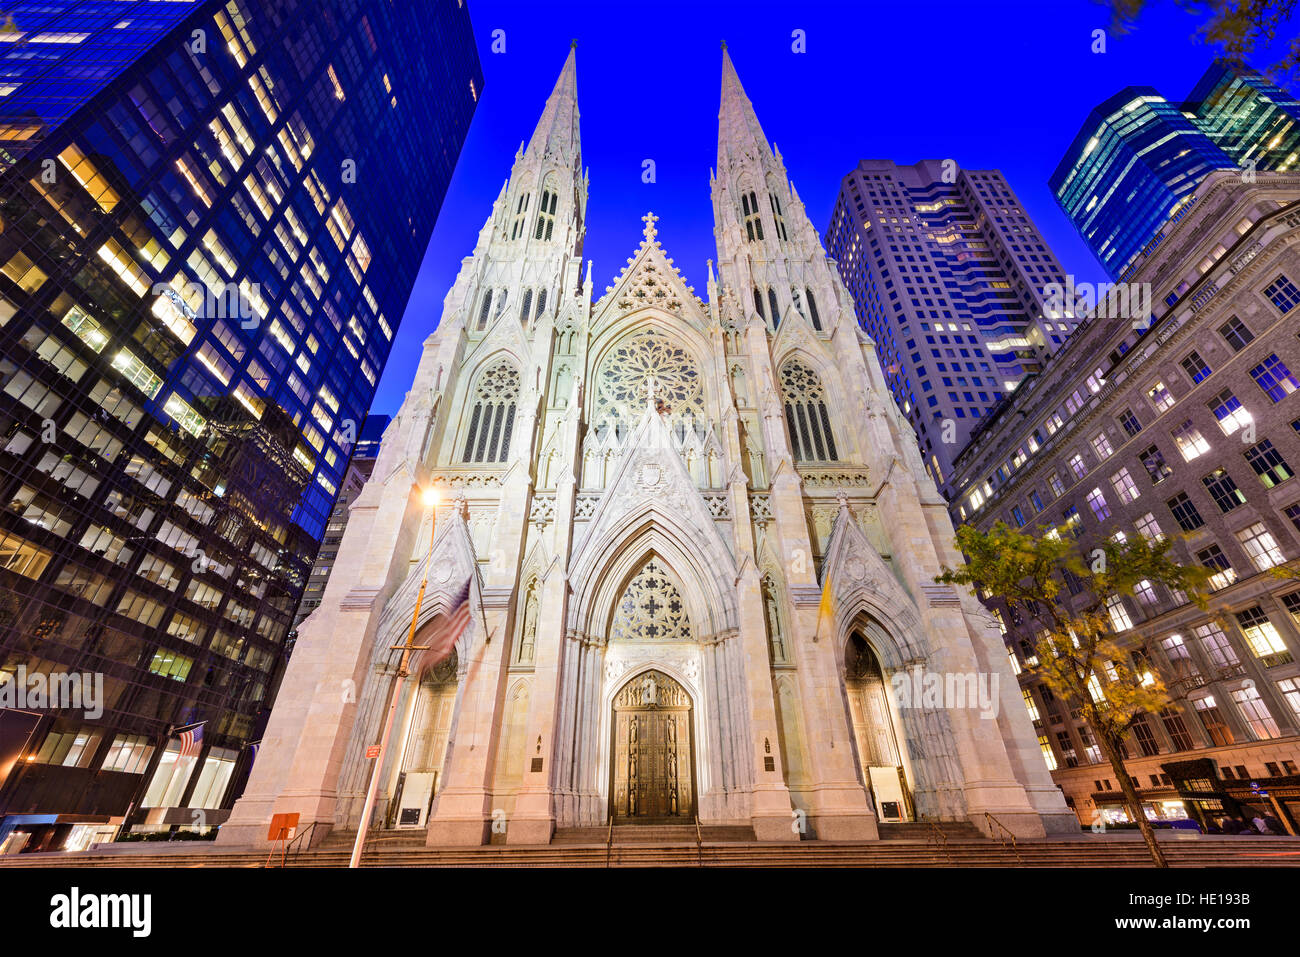 La Cathédrale Saint-Patrick de New York. Photo Stock